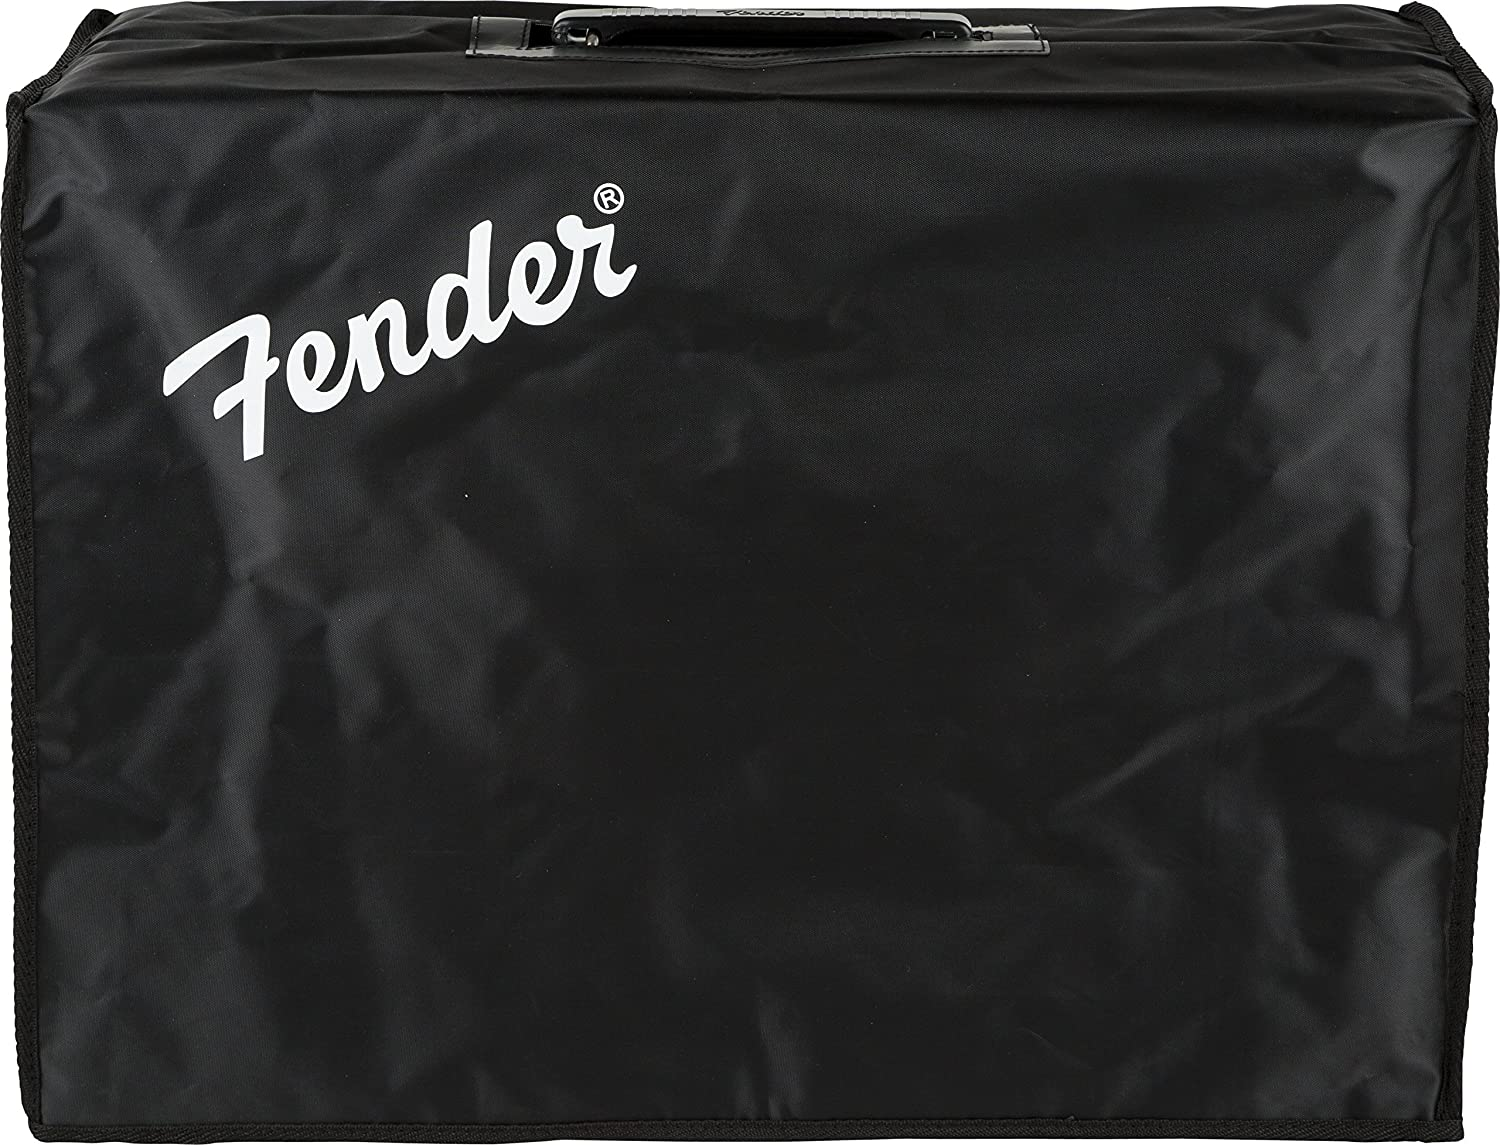 Fender Hot Rod Deluxe Black Amp Cover 0050696000 420022